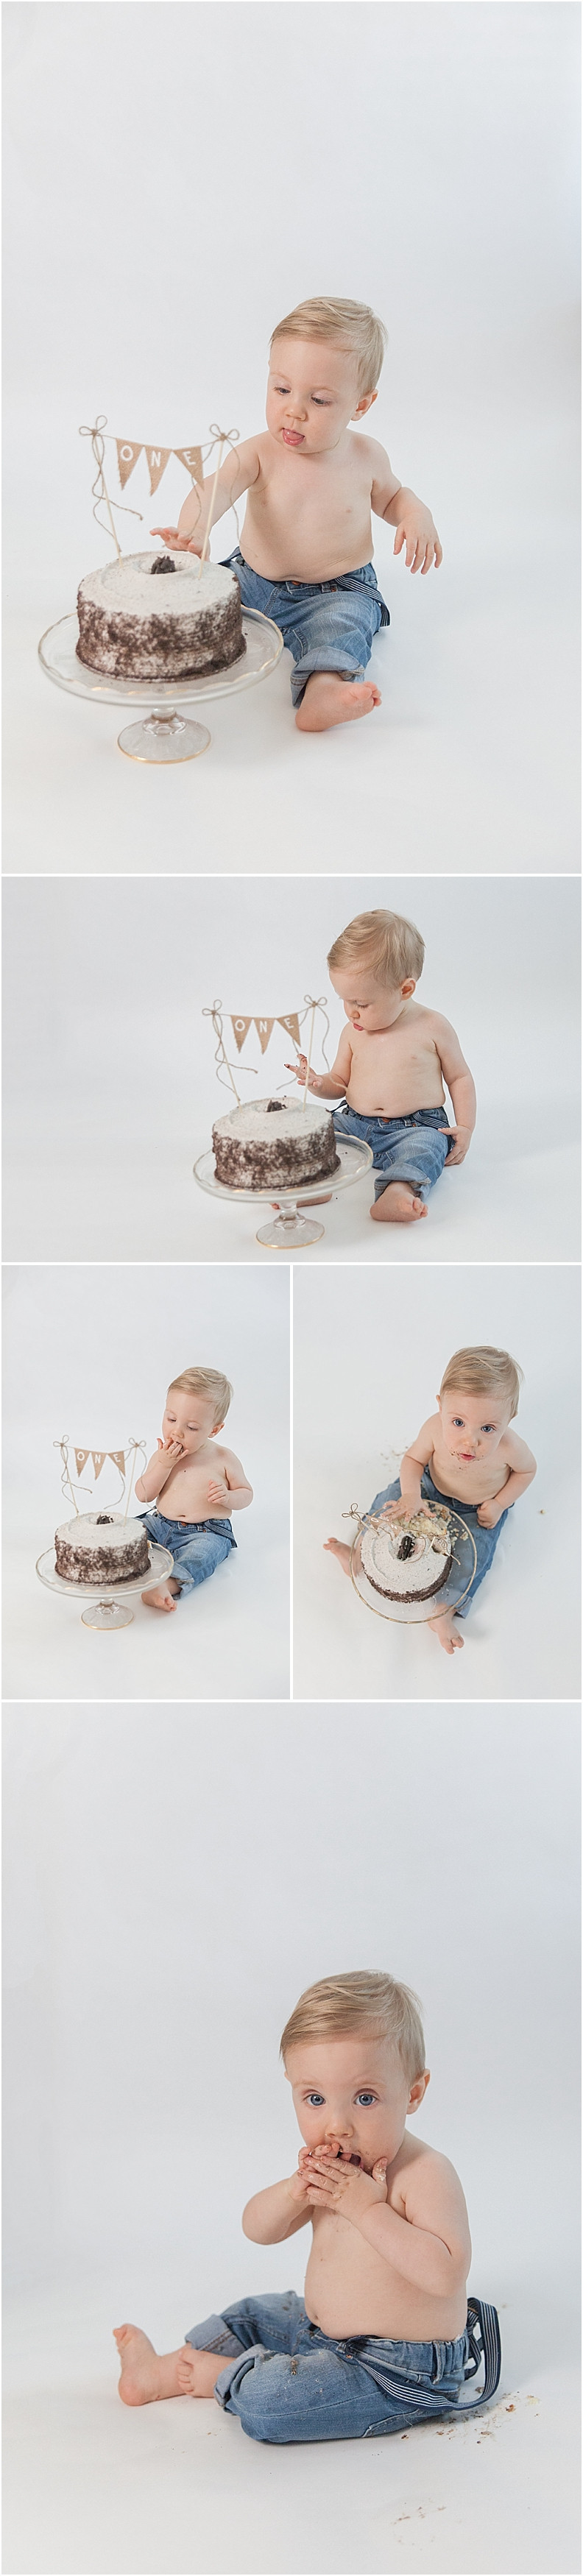 Sarasota Baby Photographer One year old baby milestone cake smash family session